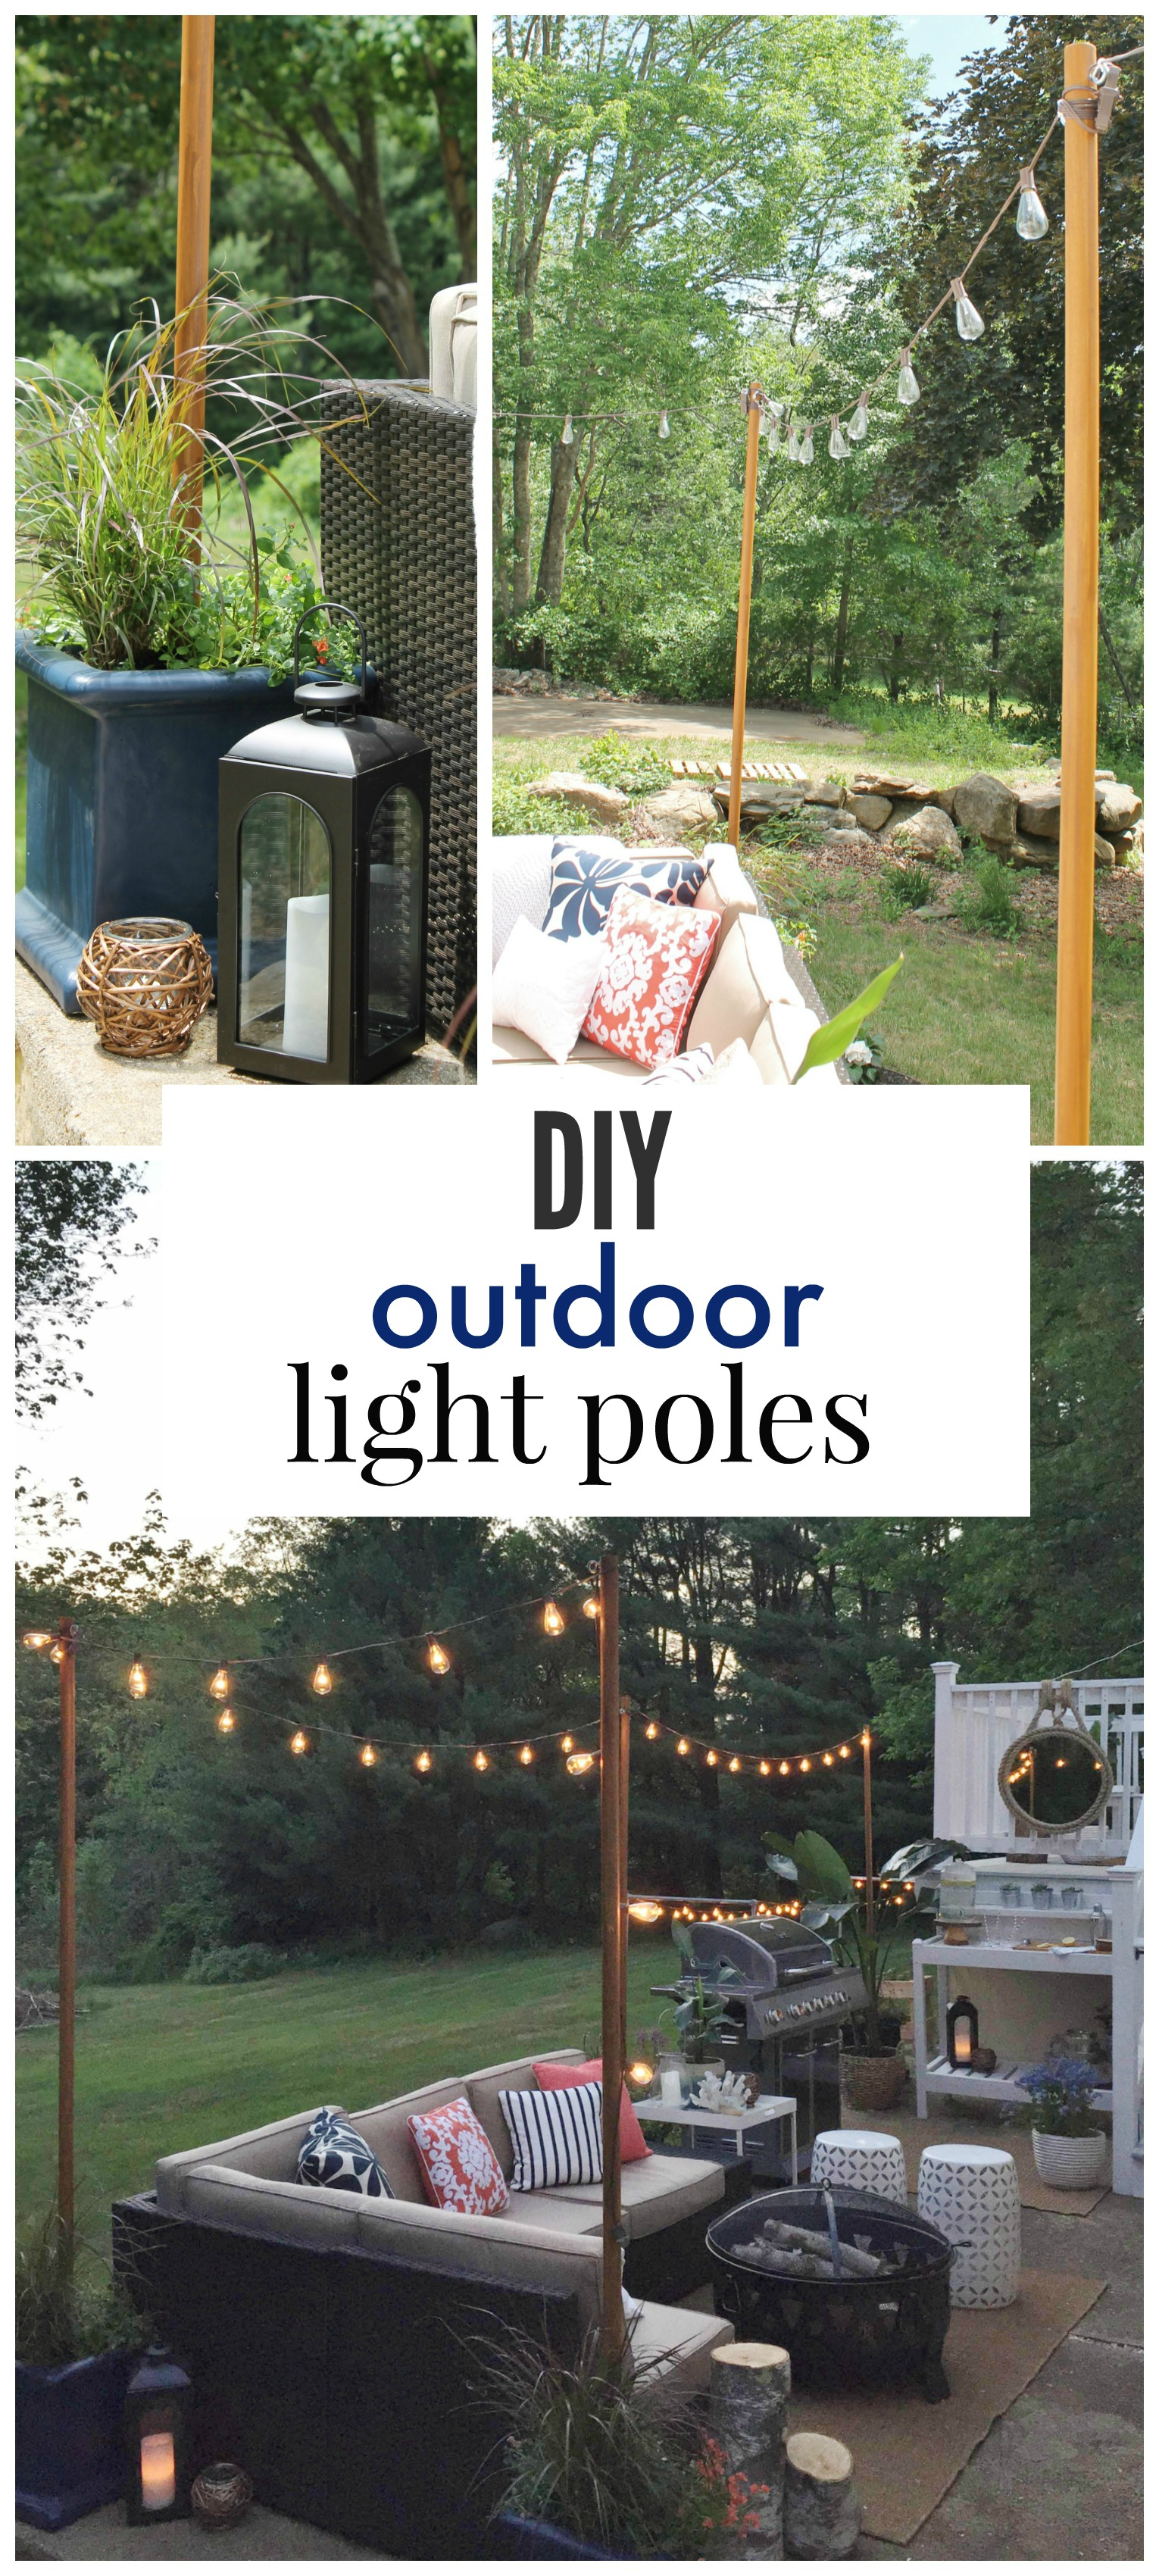 DIY Outdoor Light Poles - City Farmhouse on wedding table lighting ideas, winter wedding lighting ideas, vintage lighting ideas, elegant country wedding ideas, diy lighting ideas, wedding venue lighting ideas, small country wedding ideas, barn parties ideas, beach wedding lighting ideas, rustic lighting ideas, country lighting ideas, horse barn lighting ideas, barn weddings in maryland, barn photography ideas, wedding reception lighting ideas, indoor barn lighting ideas, outdoor wedding lighting ideas, barn dance lighting ideas, may wedding ideas, fall wedding lighting ideas,